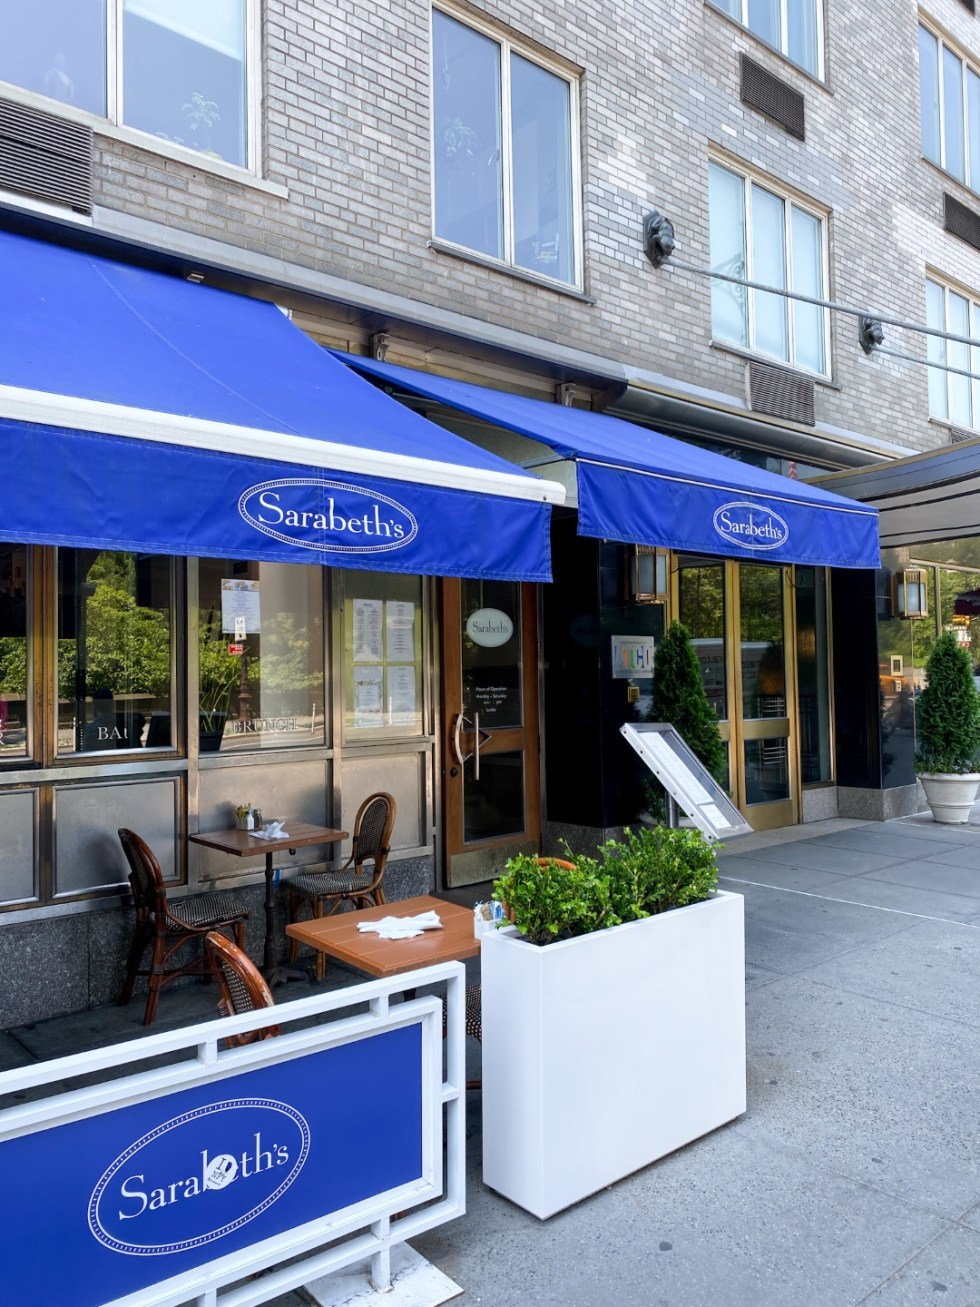 NYC Summer Weekend: Things to Do in NYC in the Summer - I'm Fixin' To - @imfixintoblog   NYC Summer Weekend by popular NC travel blog, I'm Fixin' To: image of Sara Beth's restaurants.